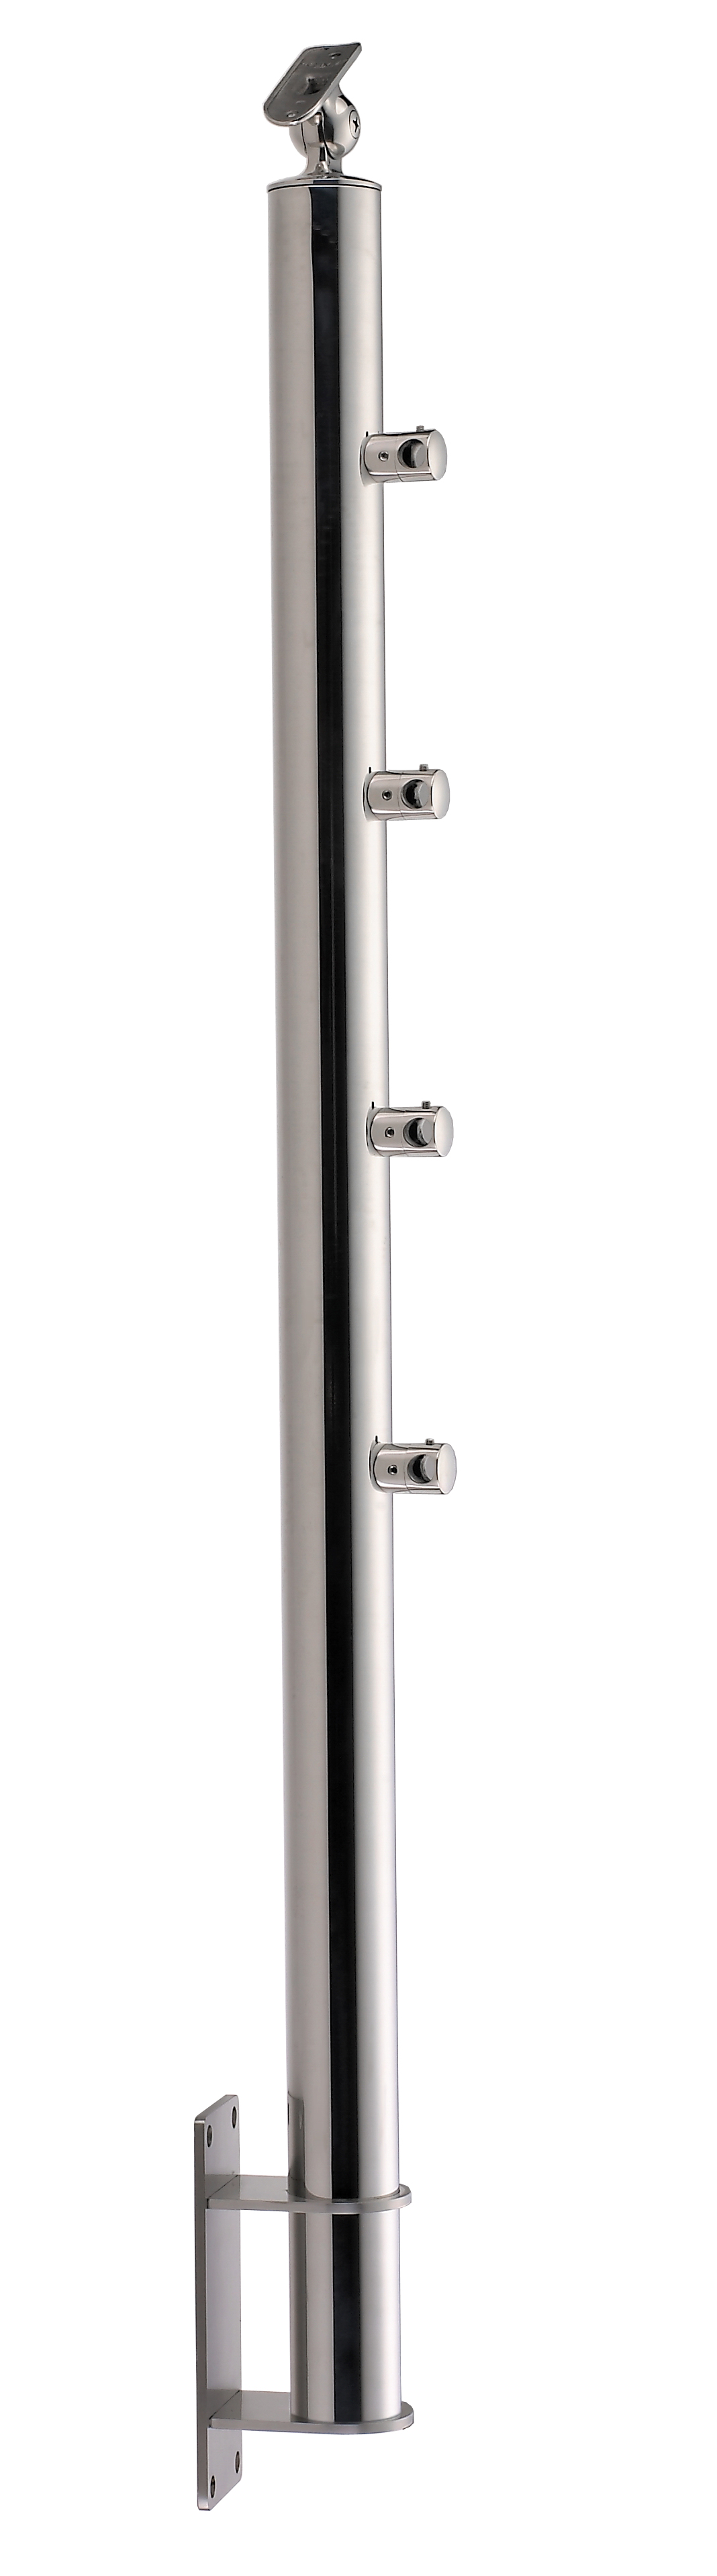 Stainless Steel Balustrade Posts - Tubular - SS:2020459A